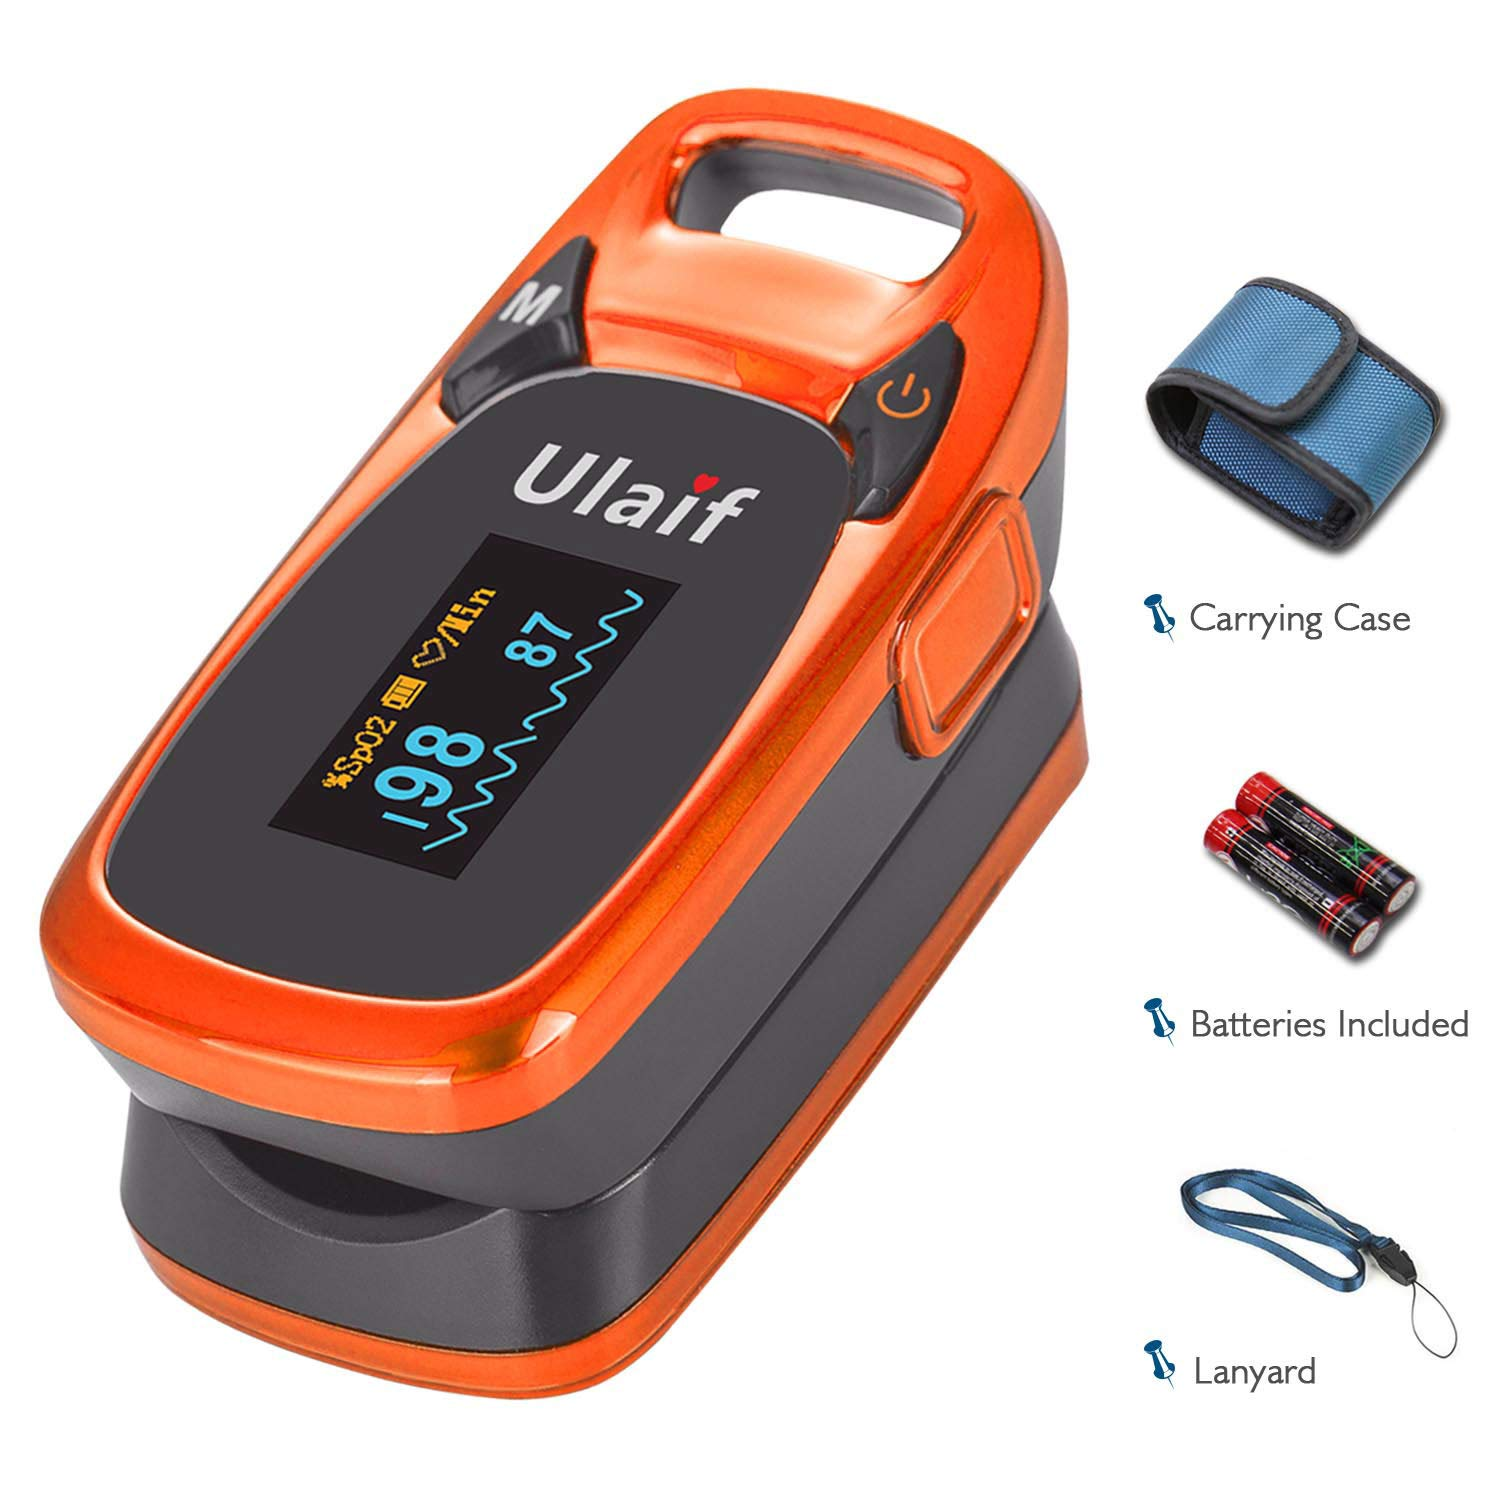 Ulaif Fingertip Pulse Oximeter, OLED Portable Oximetry Blood Oxygen Saturation Monitor SpO2 Finger Pulse Oximeter Readings with Carrying Case/Lanyard/Silicon Case/Batteries